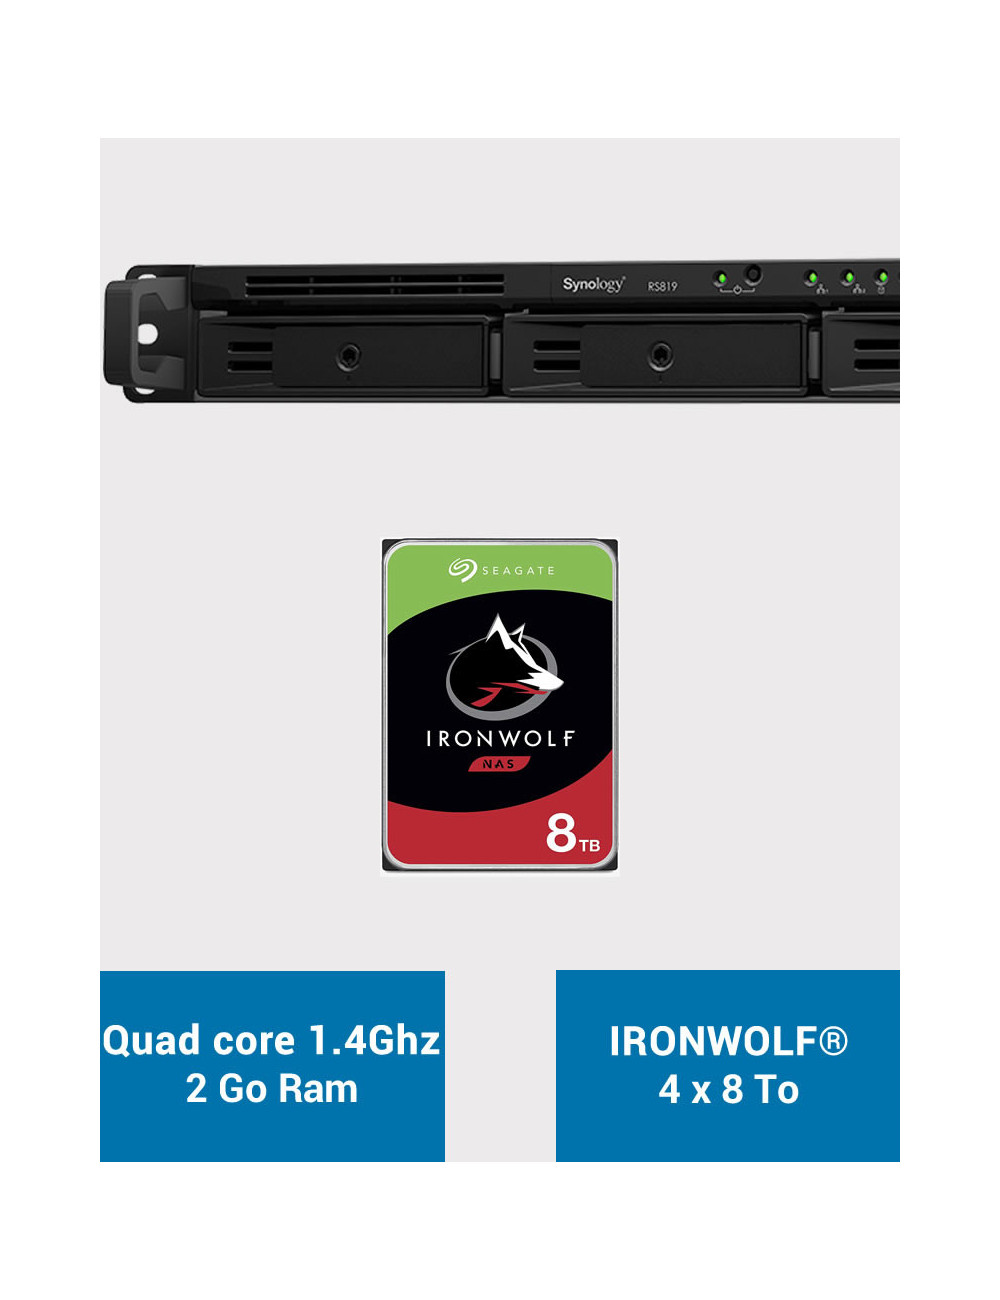 Synology RS819 Serveur NAS IRONWOLF 32To (4x8To)